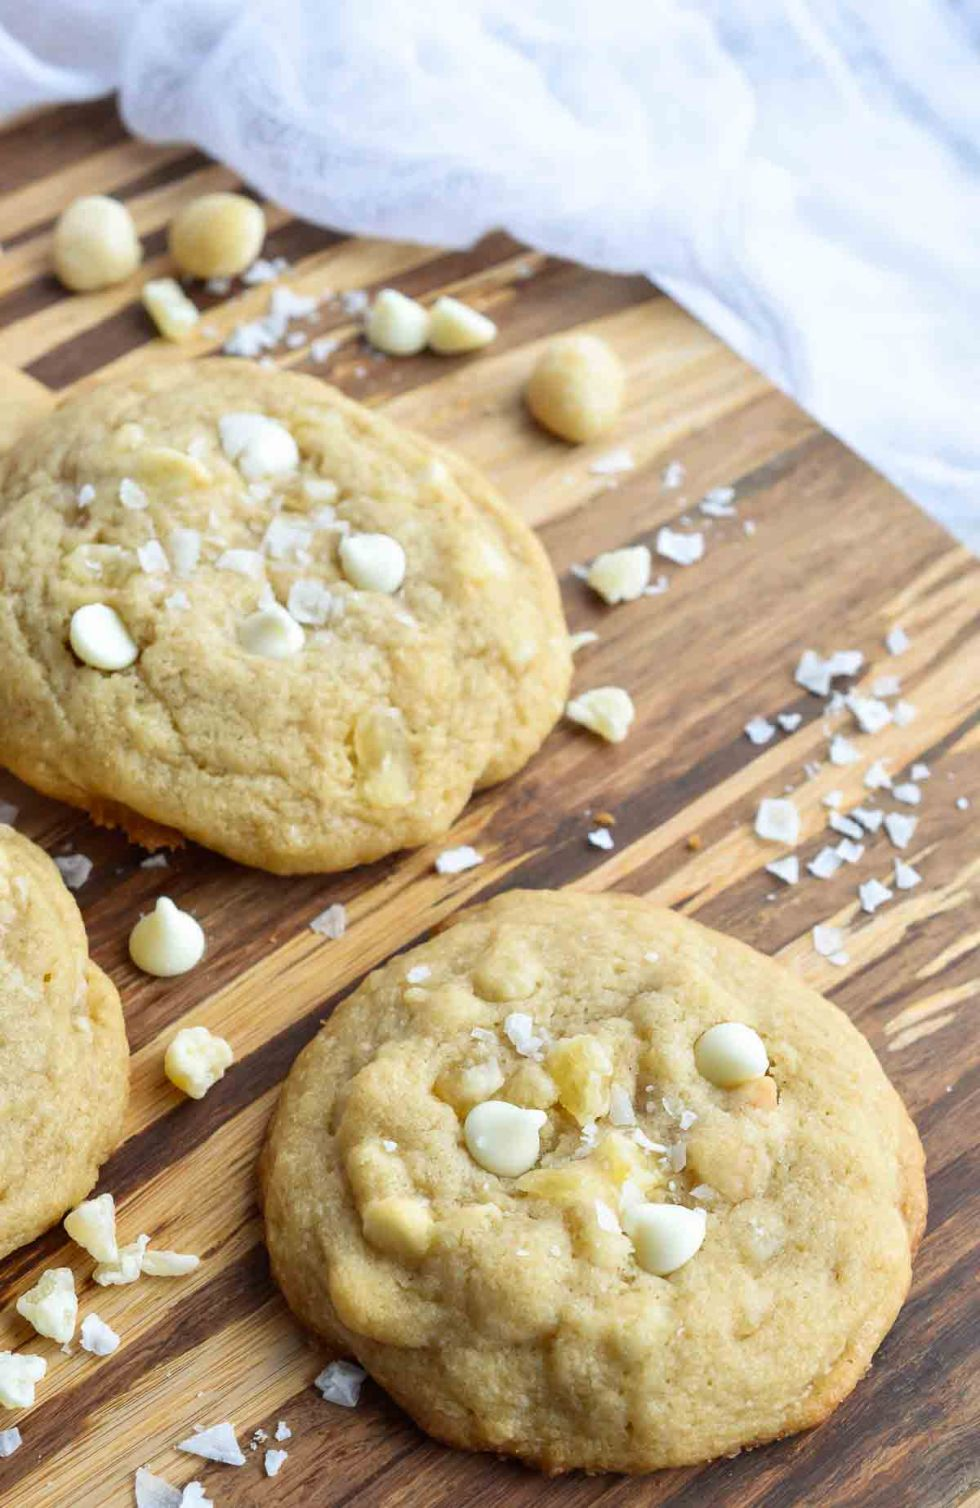 These Pineapple and White Chocolate Macadmia Nut Cookies are a great addition to any holiday dessert platter. This easy homemade cookie recipe is full of island flavor! Dried pineapple, white chocolate chips, macadamia nuts and flaked sea salt make the perfect combination.